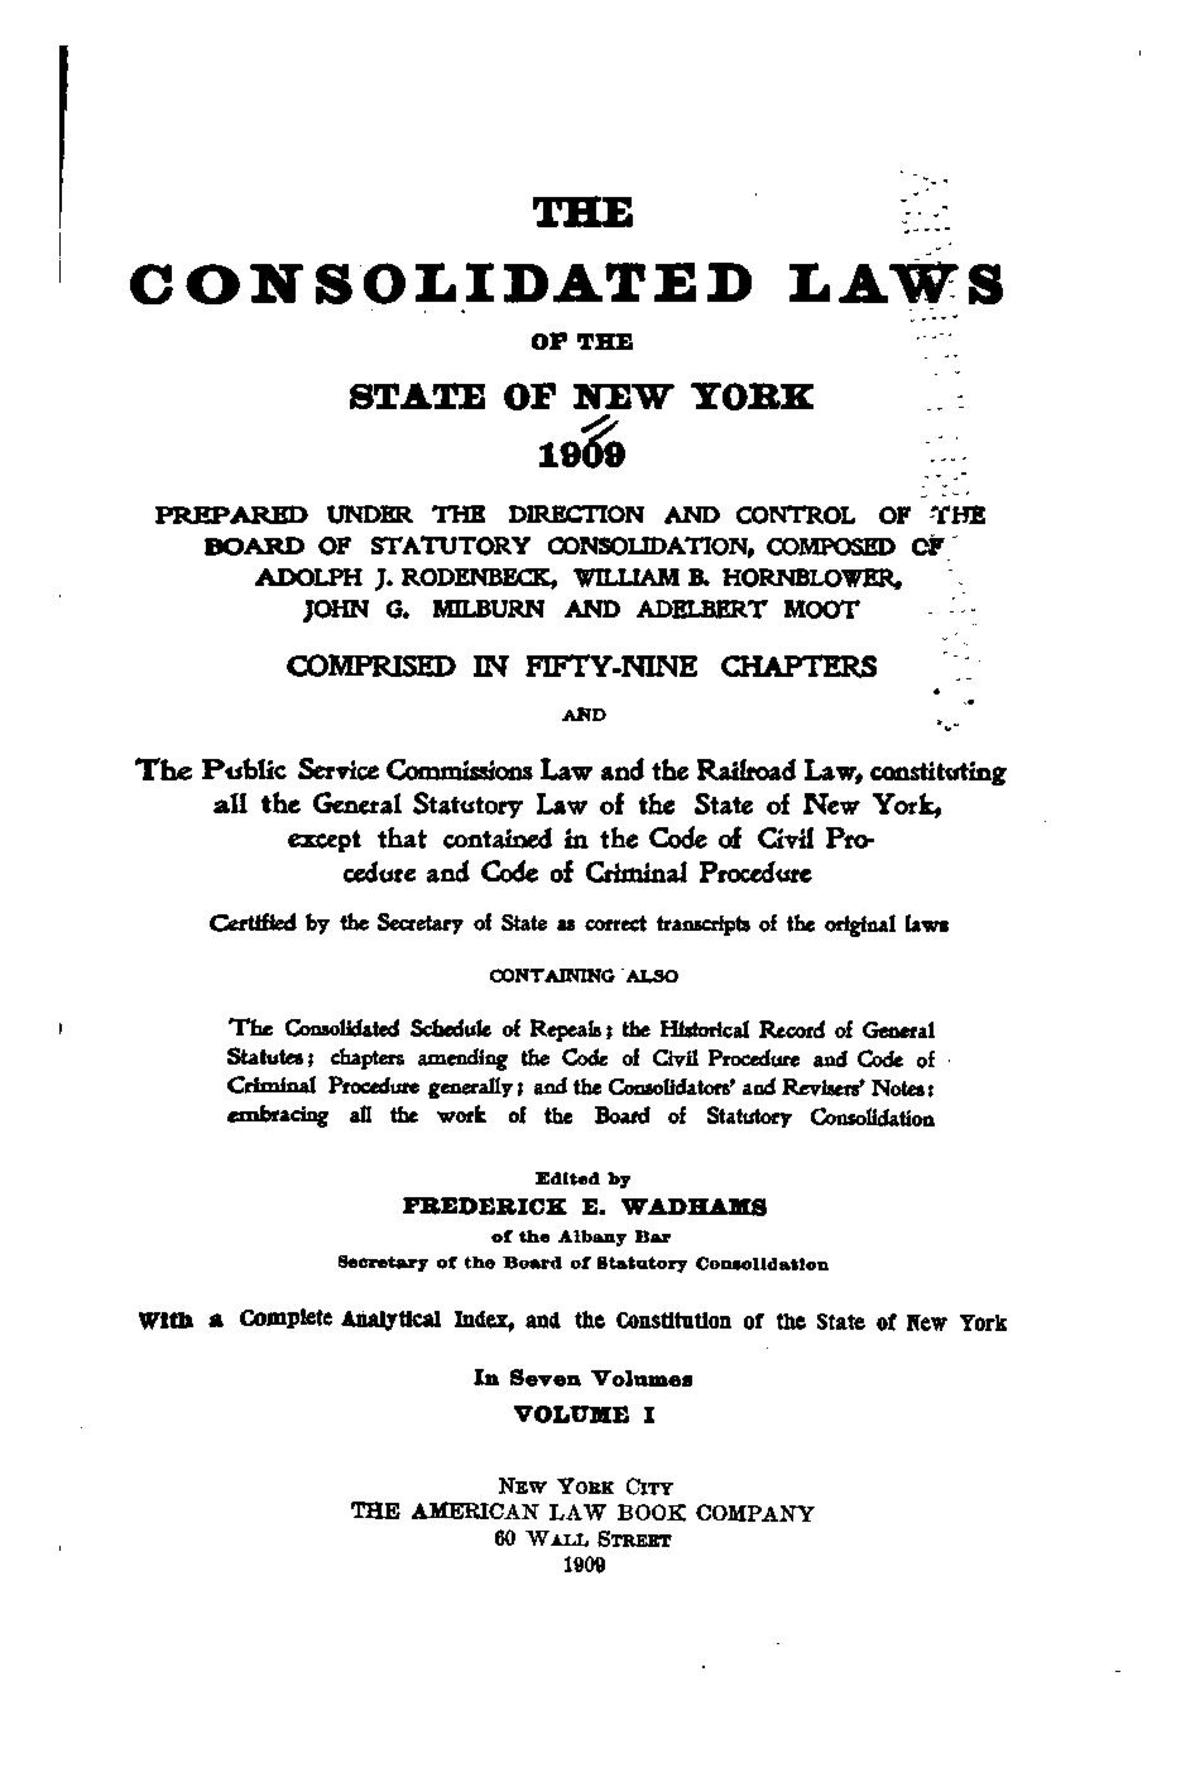 Consolidated Laws of New York - Wikipedia